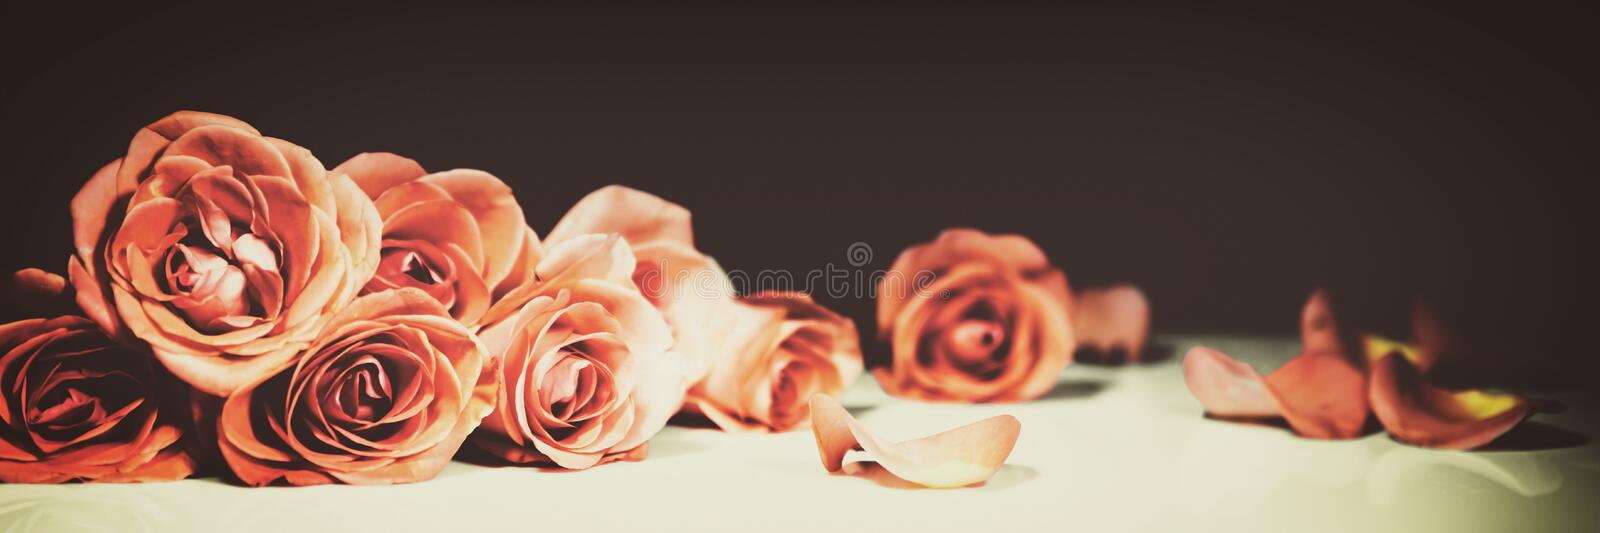 Roses with vintage filter royalty free stock images